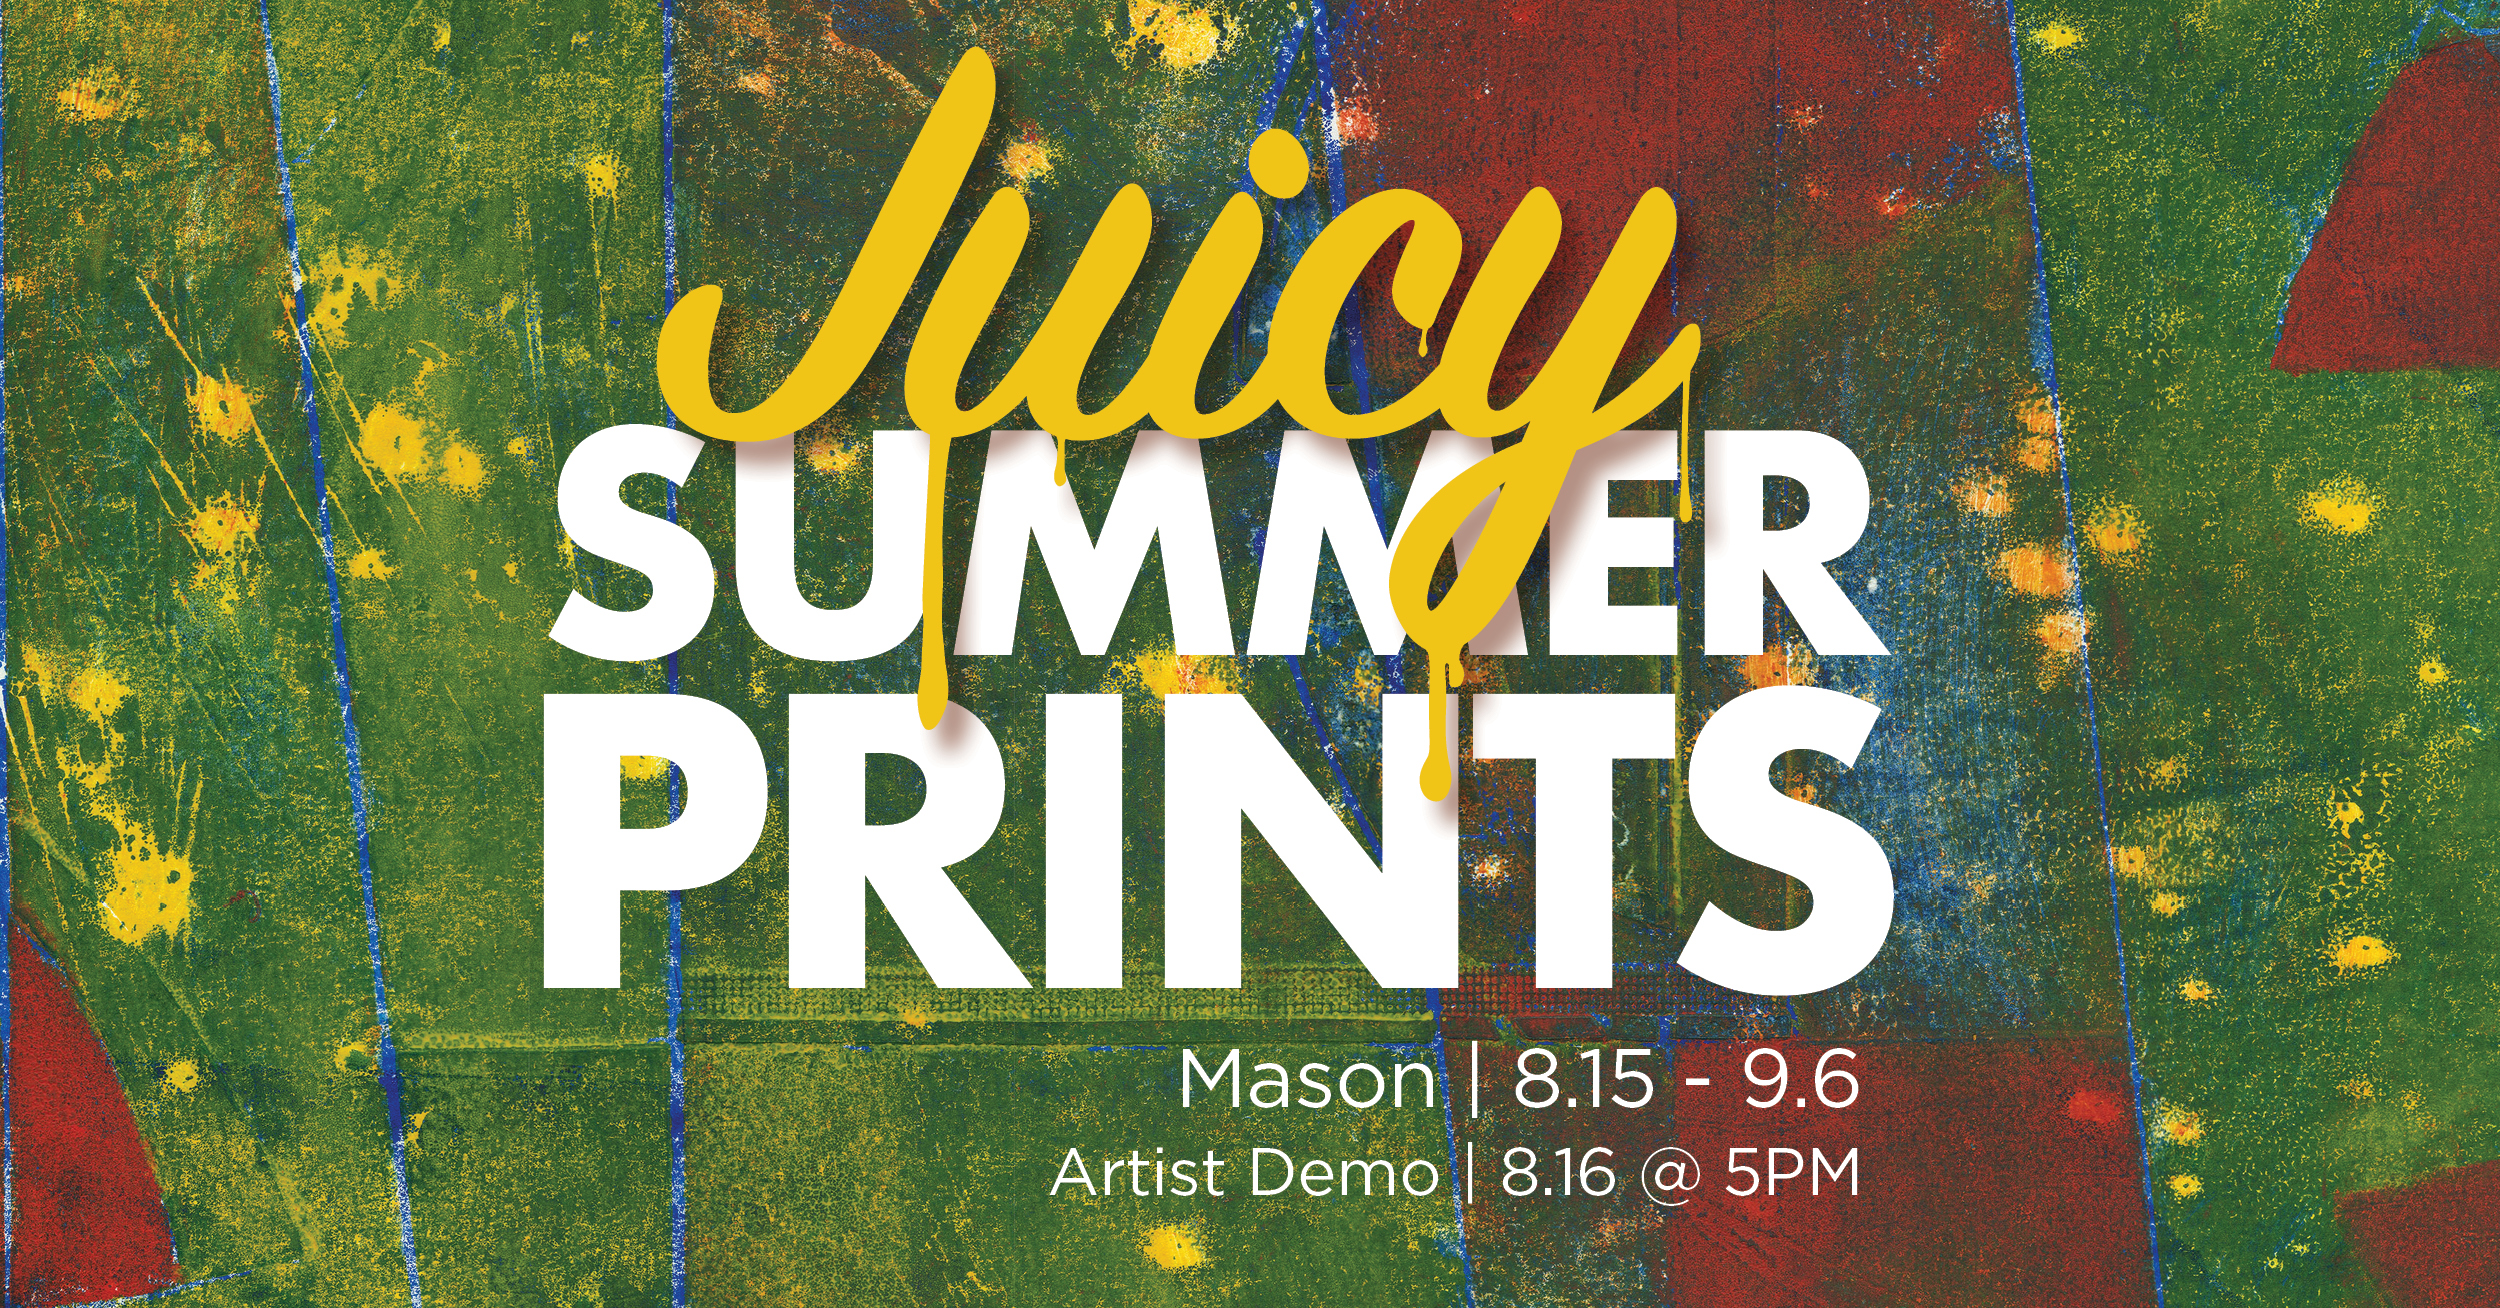 Juicy Summer Prints gallery graphic, Jon Mason, August 15 through September 6